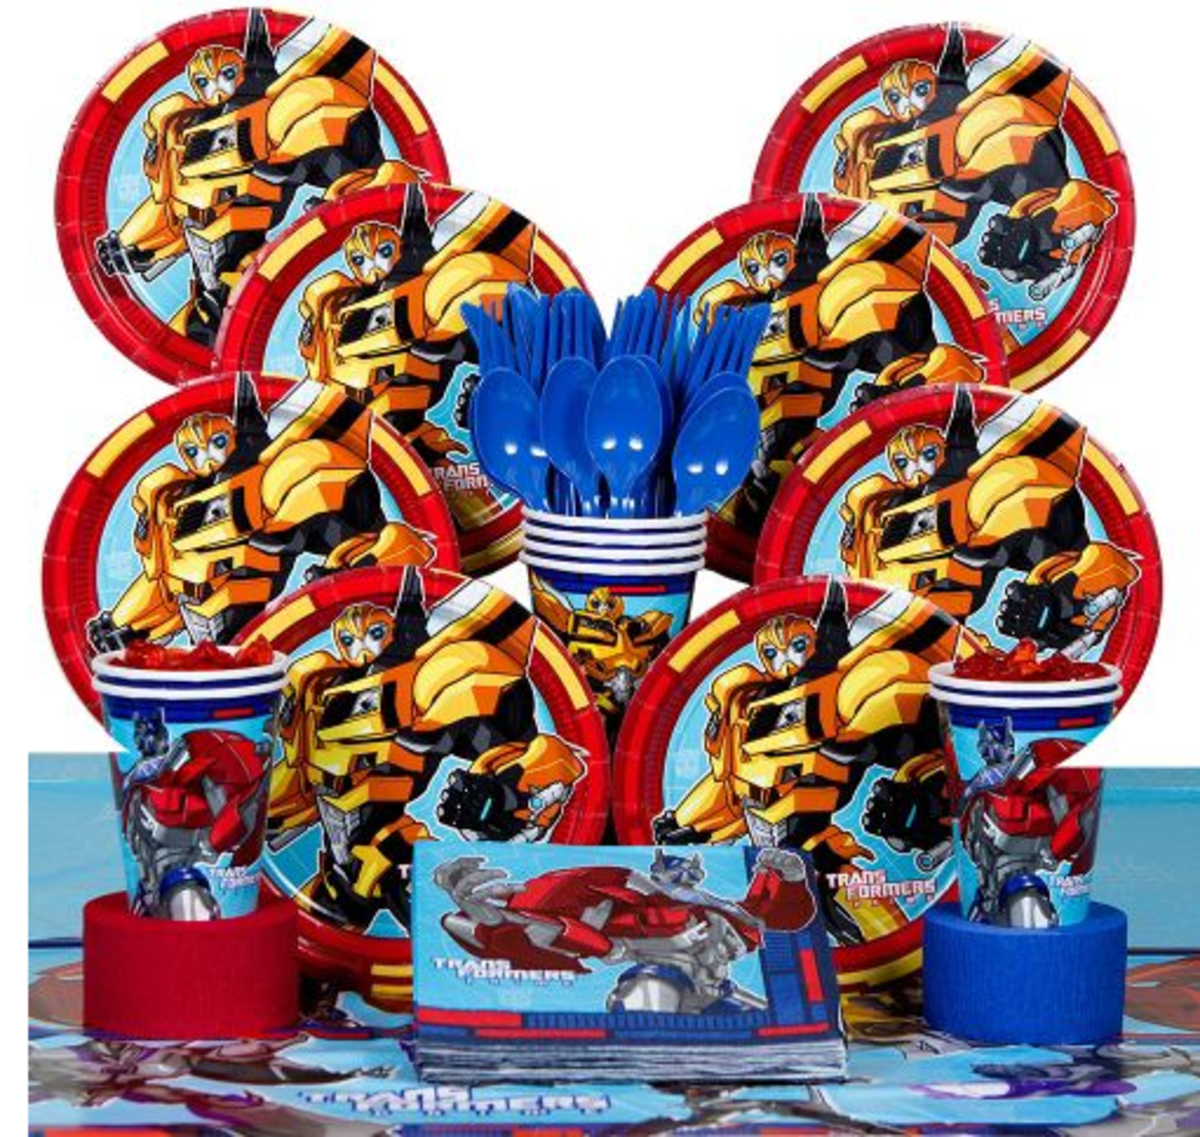 Transformers 2 Revenge of the Fallen Movie Birthday Party Pencil Topper Favors